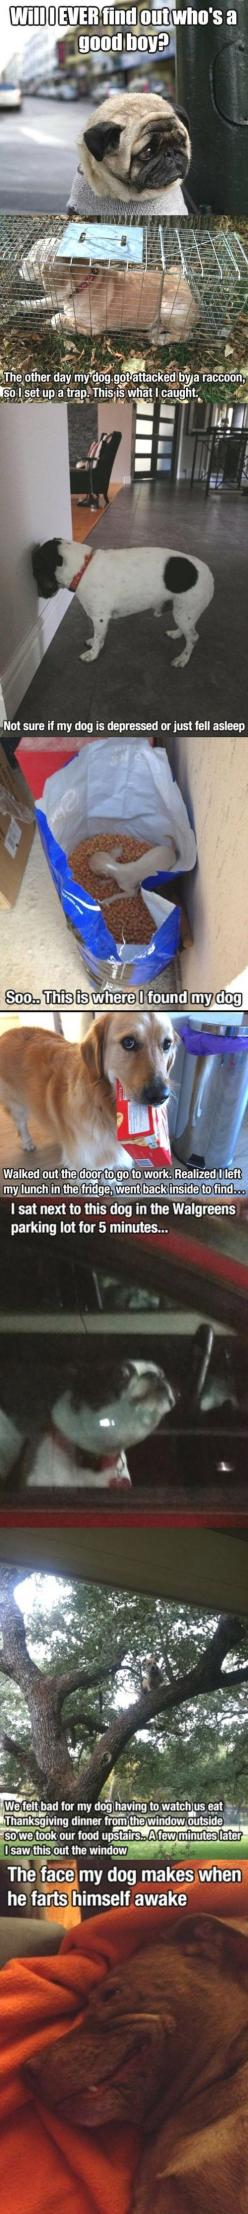 I love dogs: Funny Pets, Funny Dogs, Funny Dog Pics, Funny Dog Shaming, Hilarious Dogs, Funny Animal, Funny Puppies, Dogs Funny, Puppys Funny